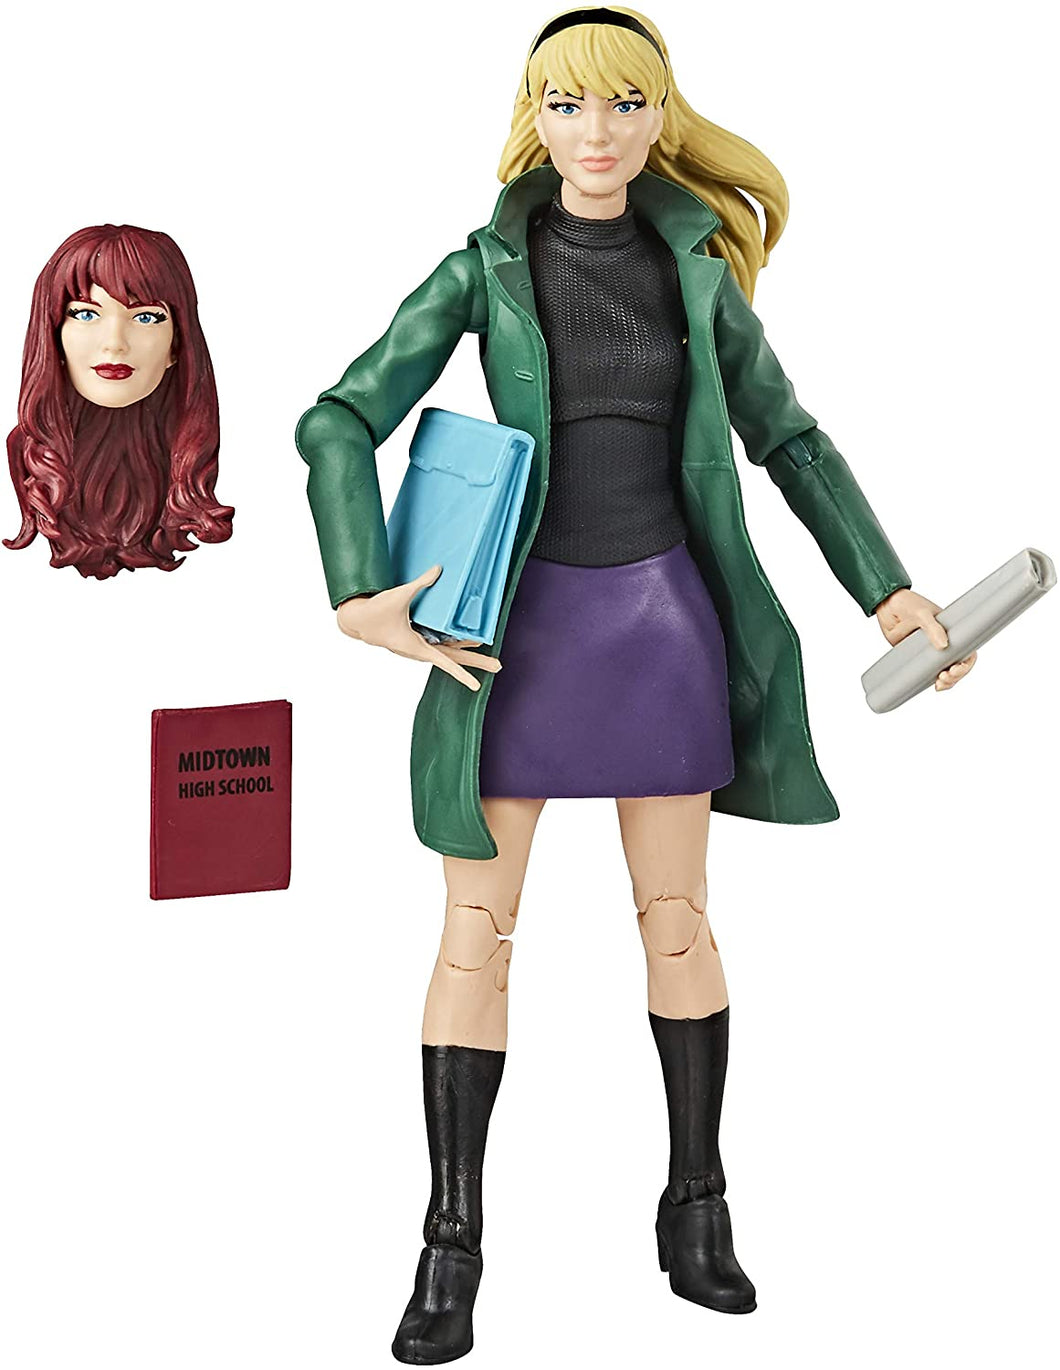 Spider-Man Hasbro Marvel Legends Series 6-inch Collectible Gwen Stacy Action Figure Toy Retro Collection